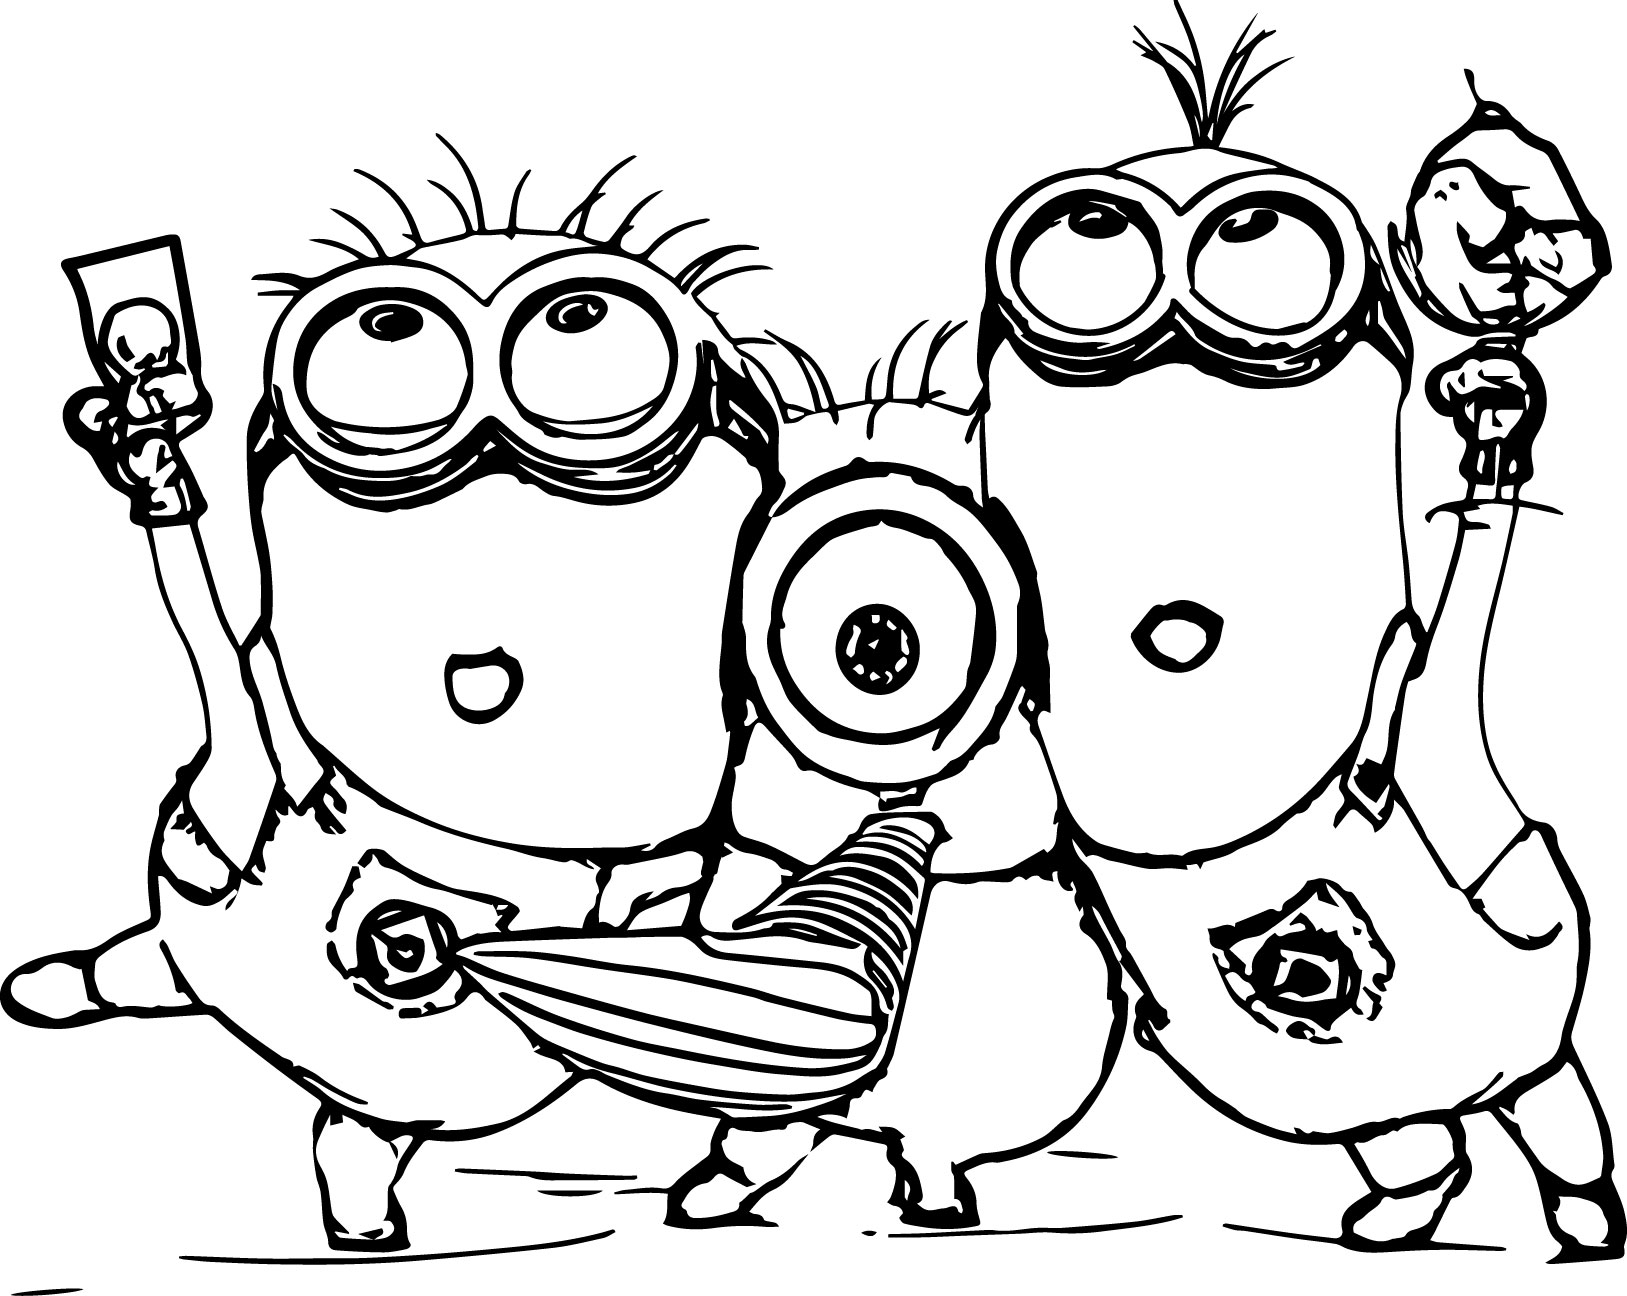 coloring pictures of minions minion coloring pages best coloring pages for kids coloring pictures of minions 1 1